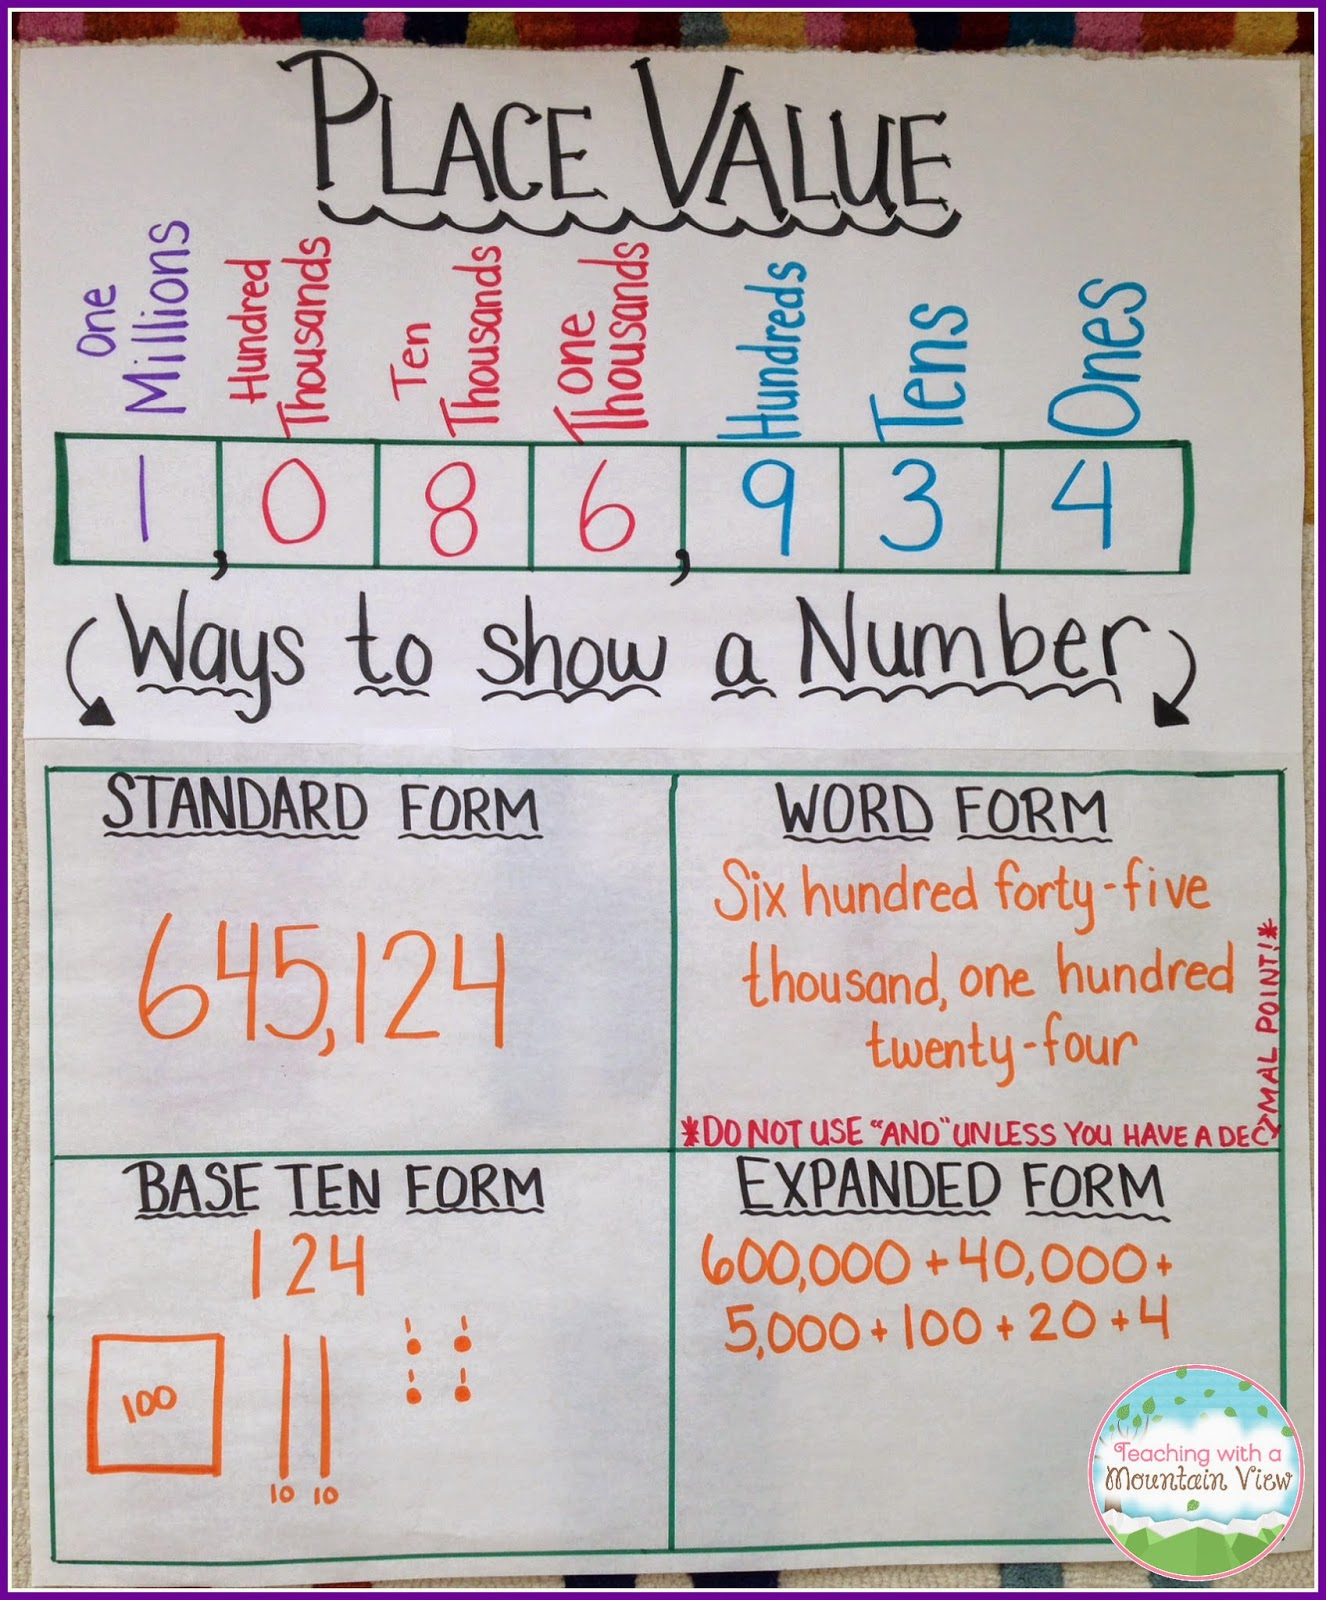 standard form word form expanded form anchor chart  Place Value - Lessons - Tes Teach